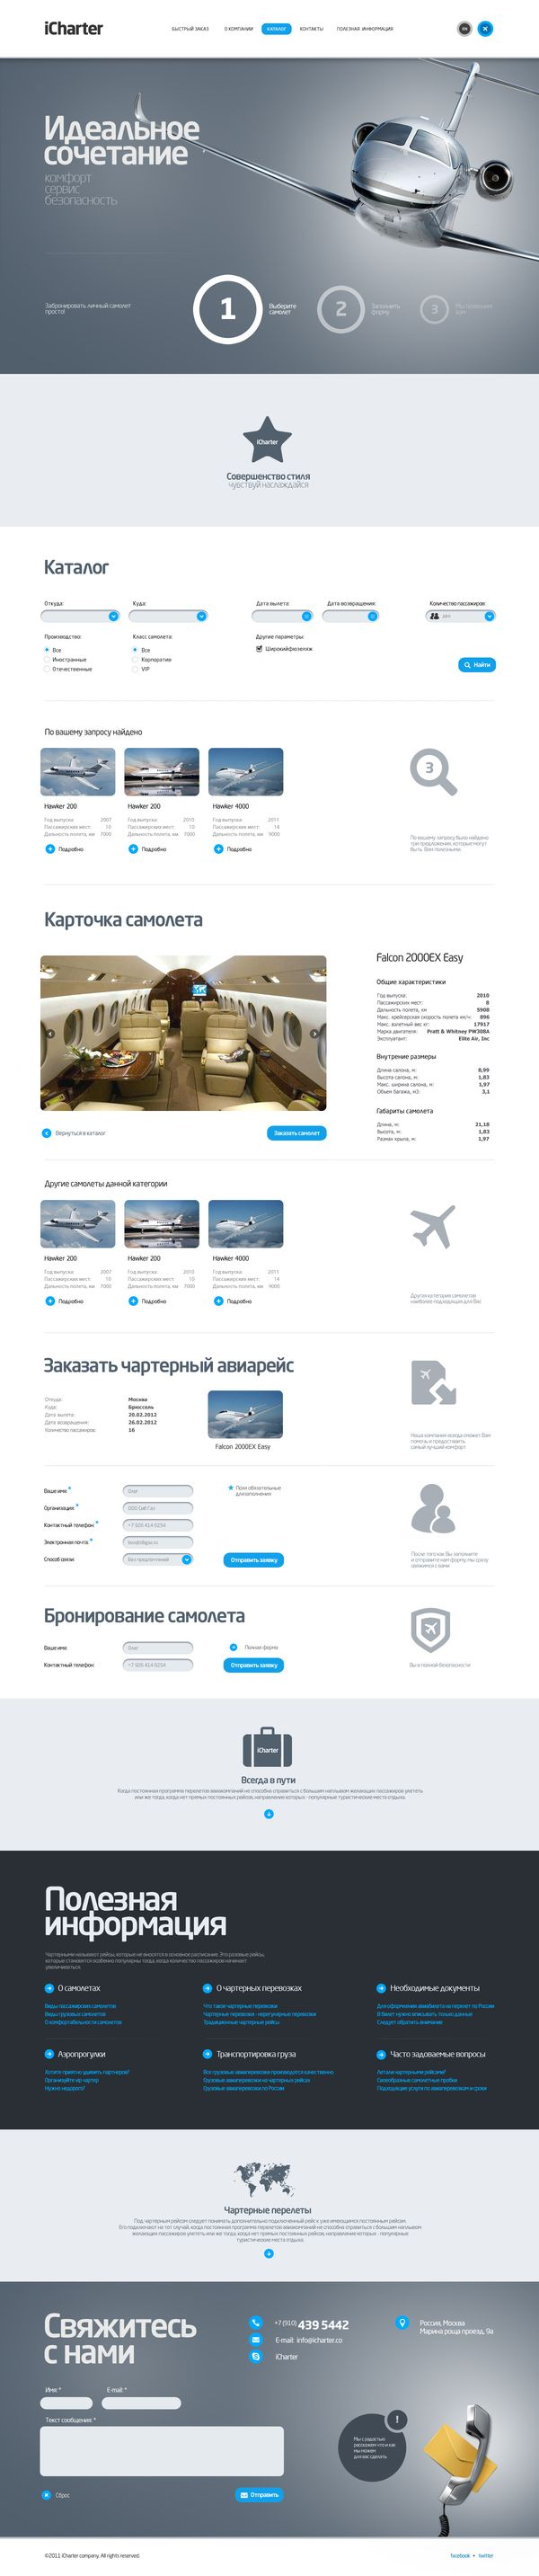 iCharter.ru by Dliniy , via Behance